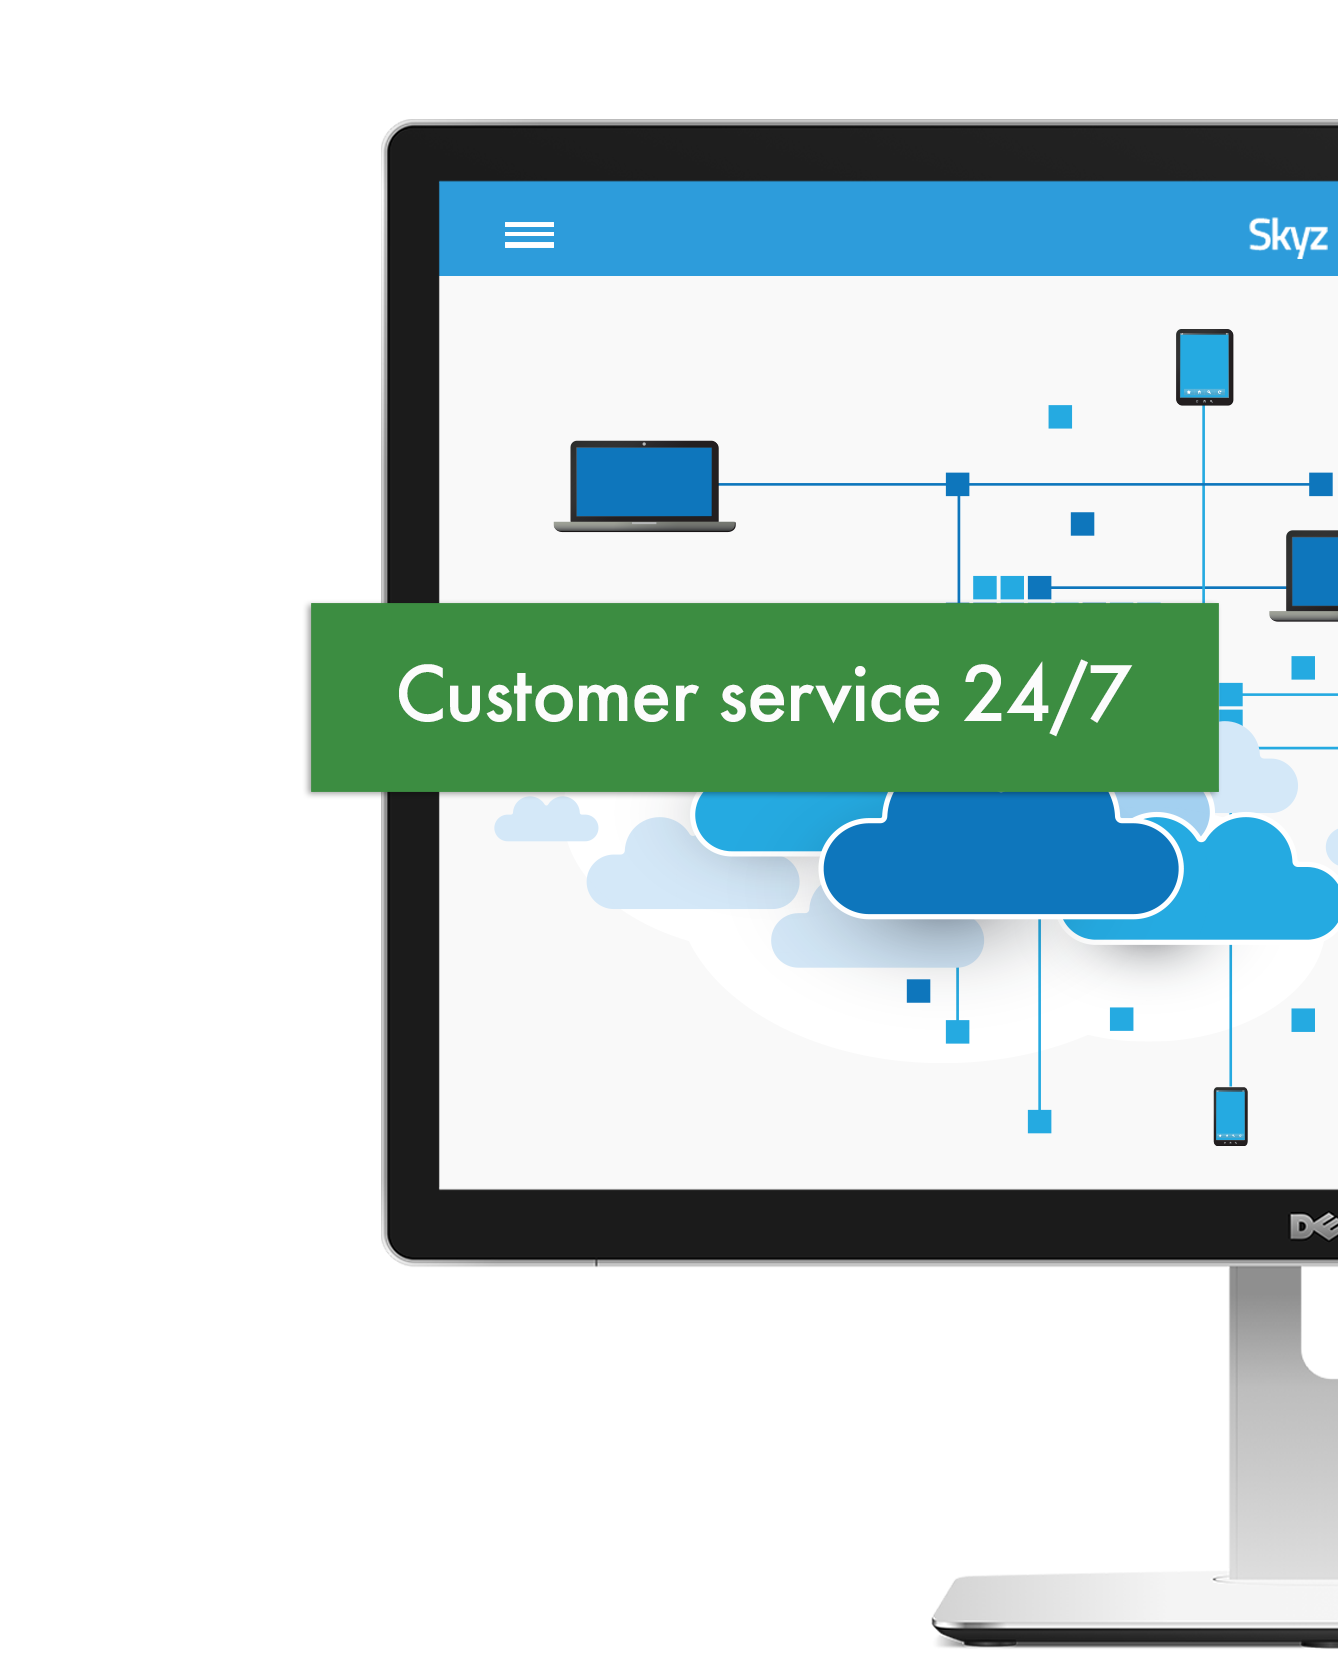 Skyz Service cloud technology